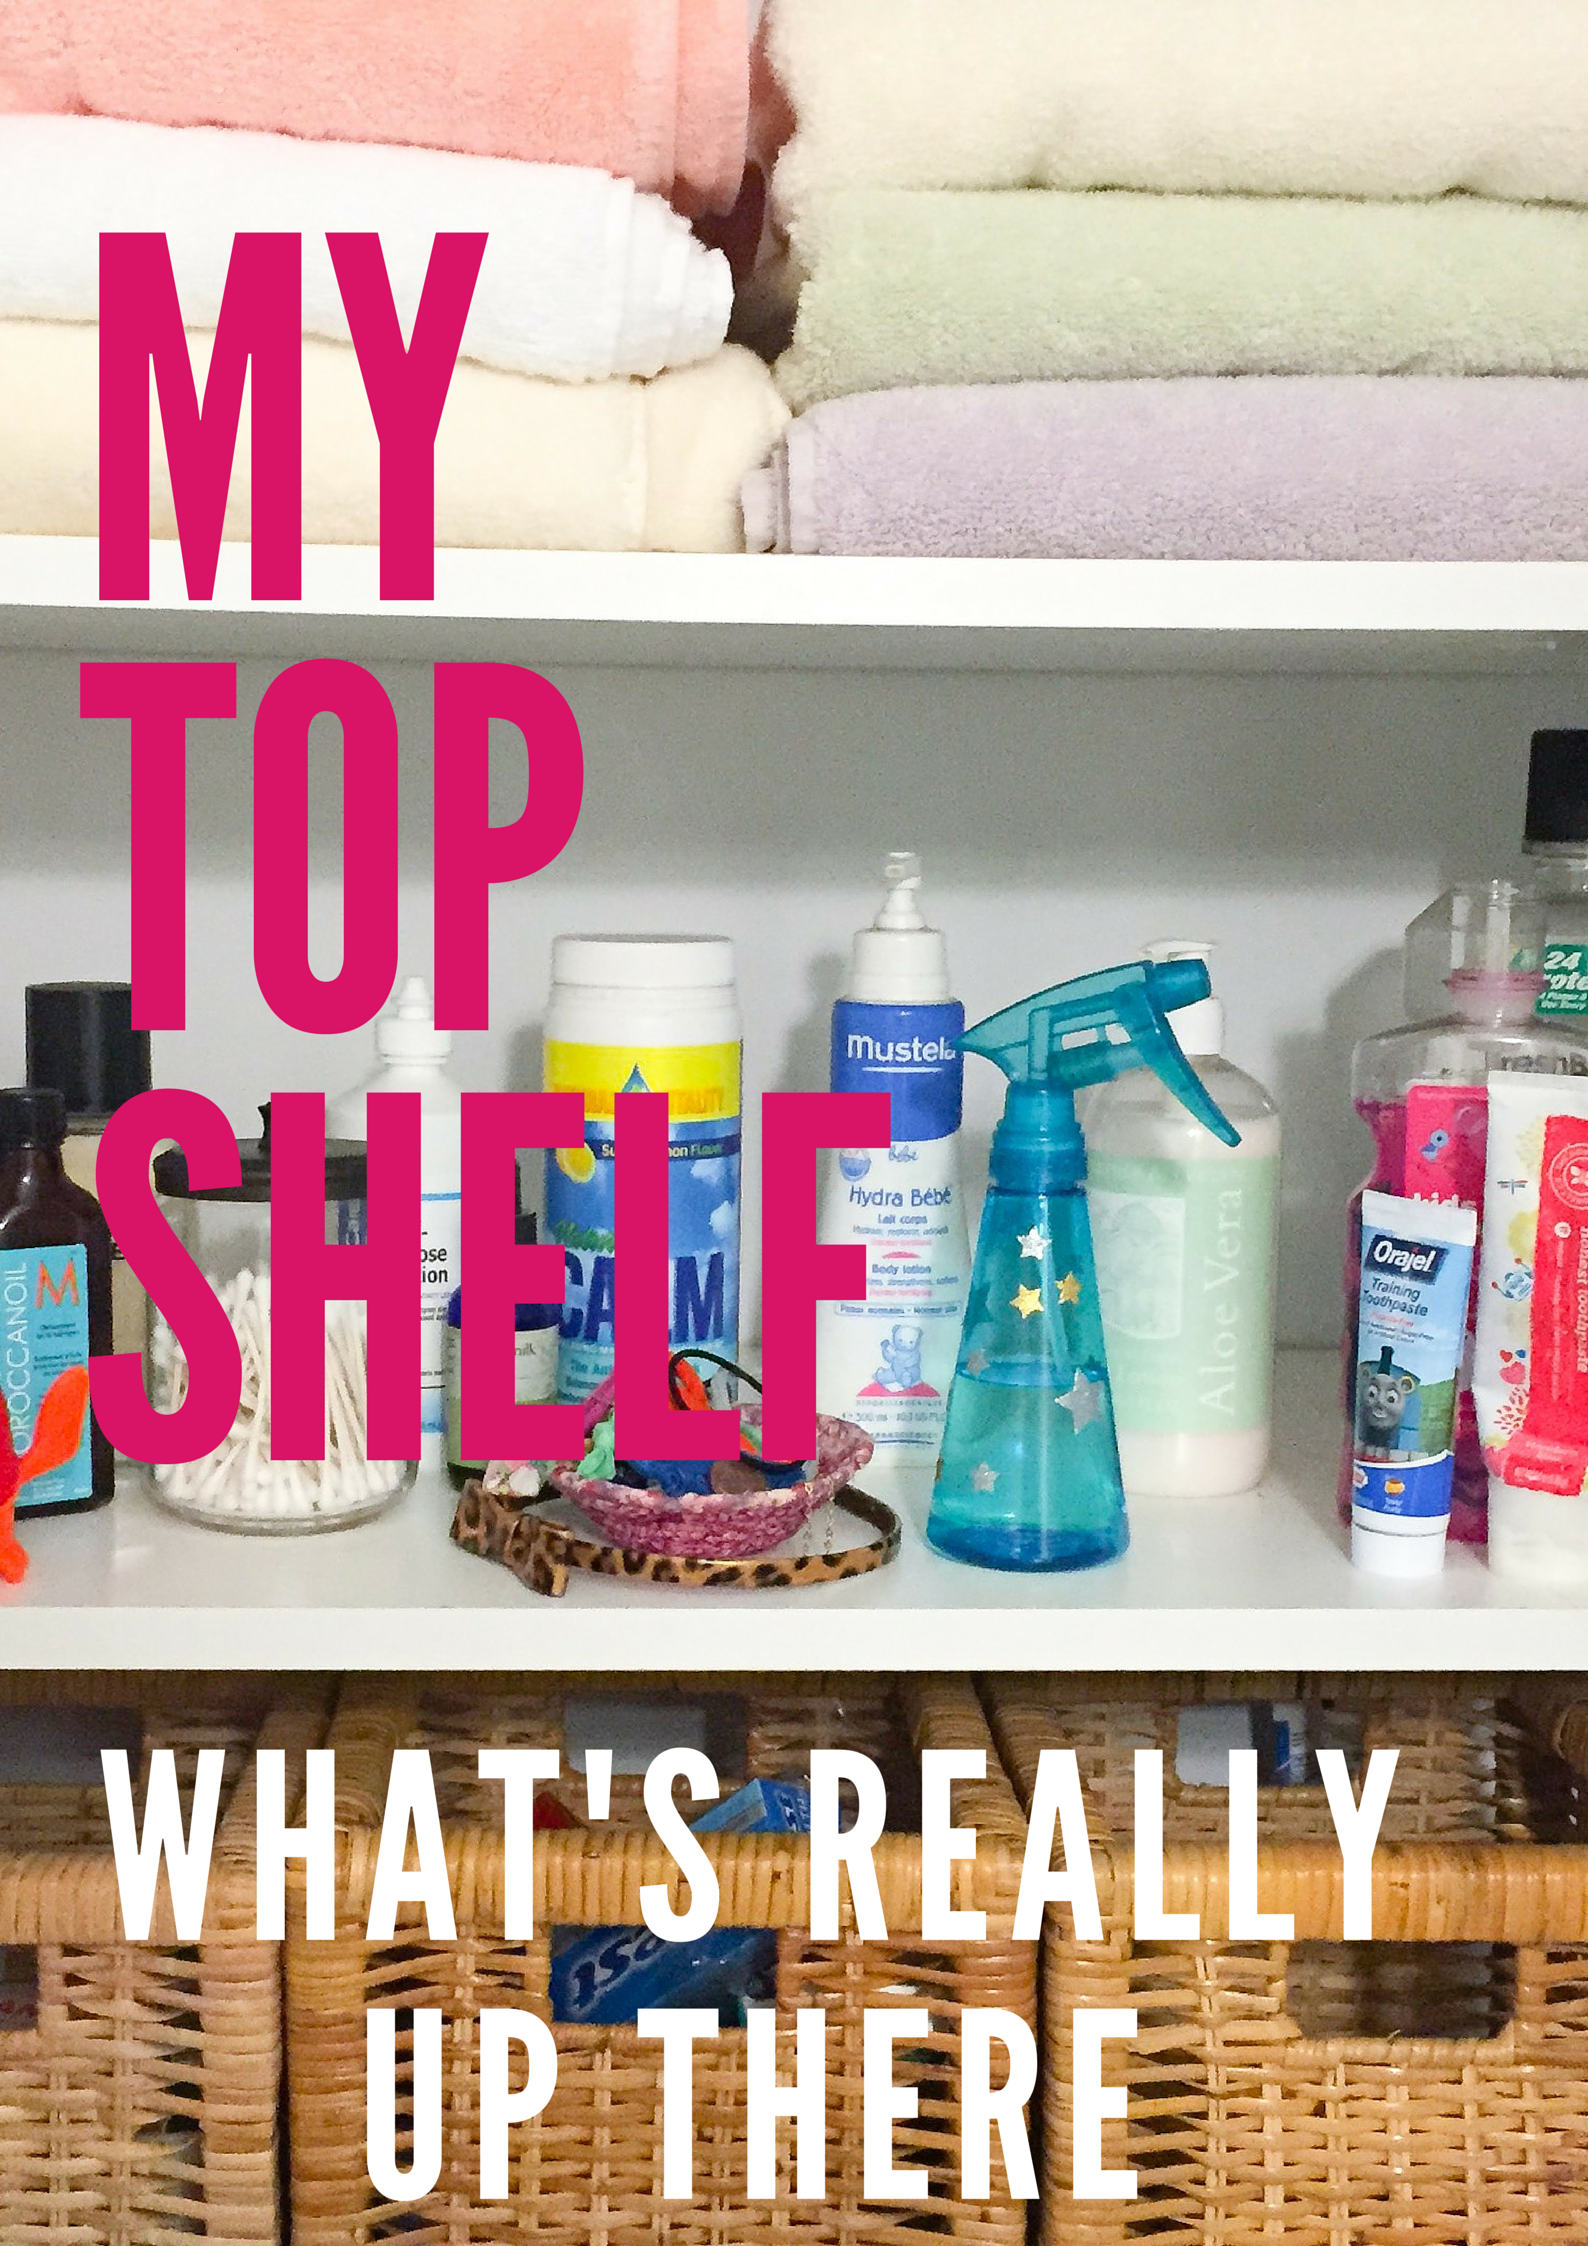 My top_shelf